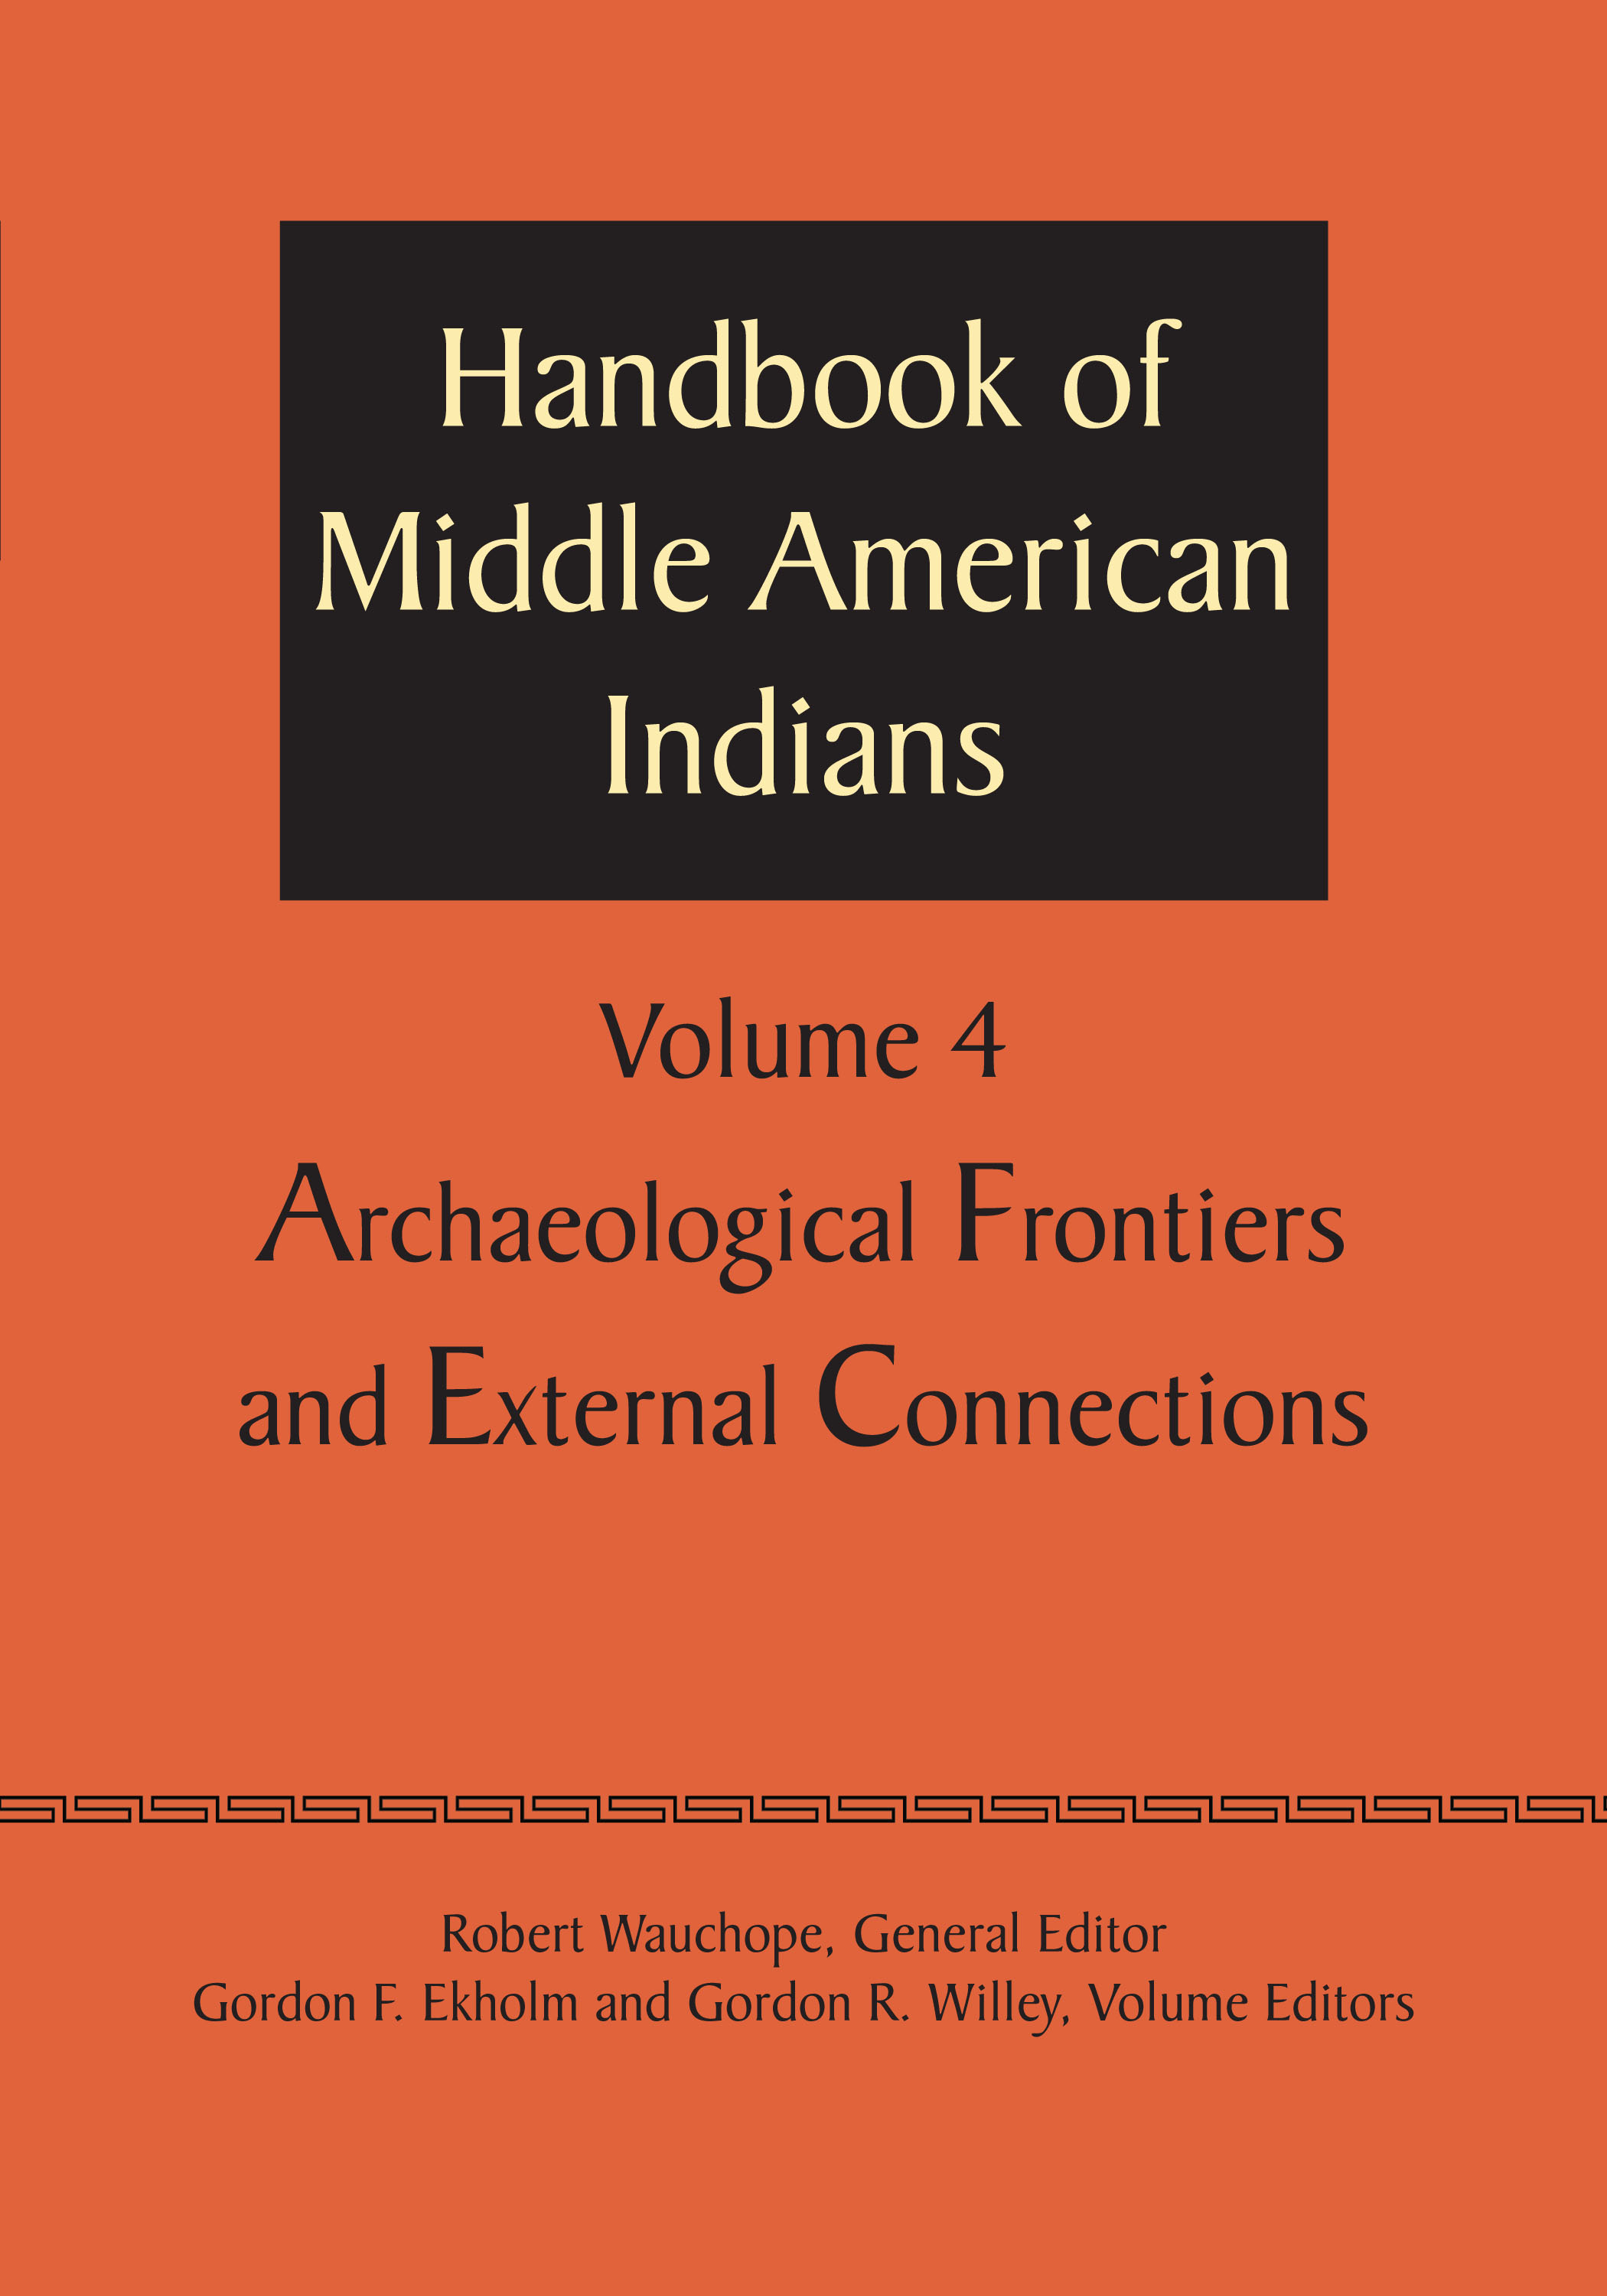 Cover of Handbook of Middle American Indians, Volume 4